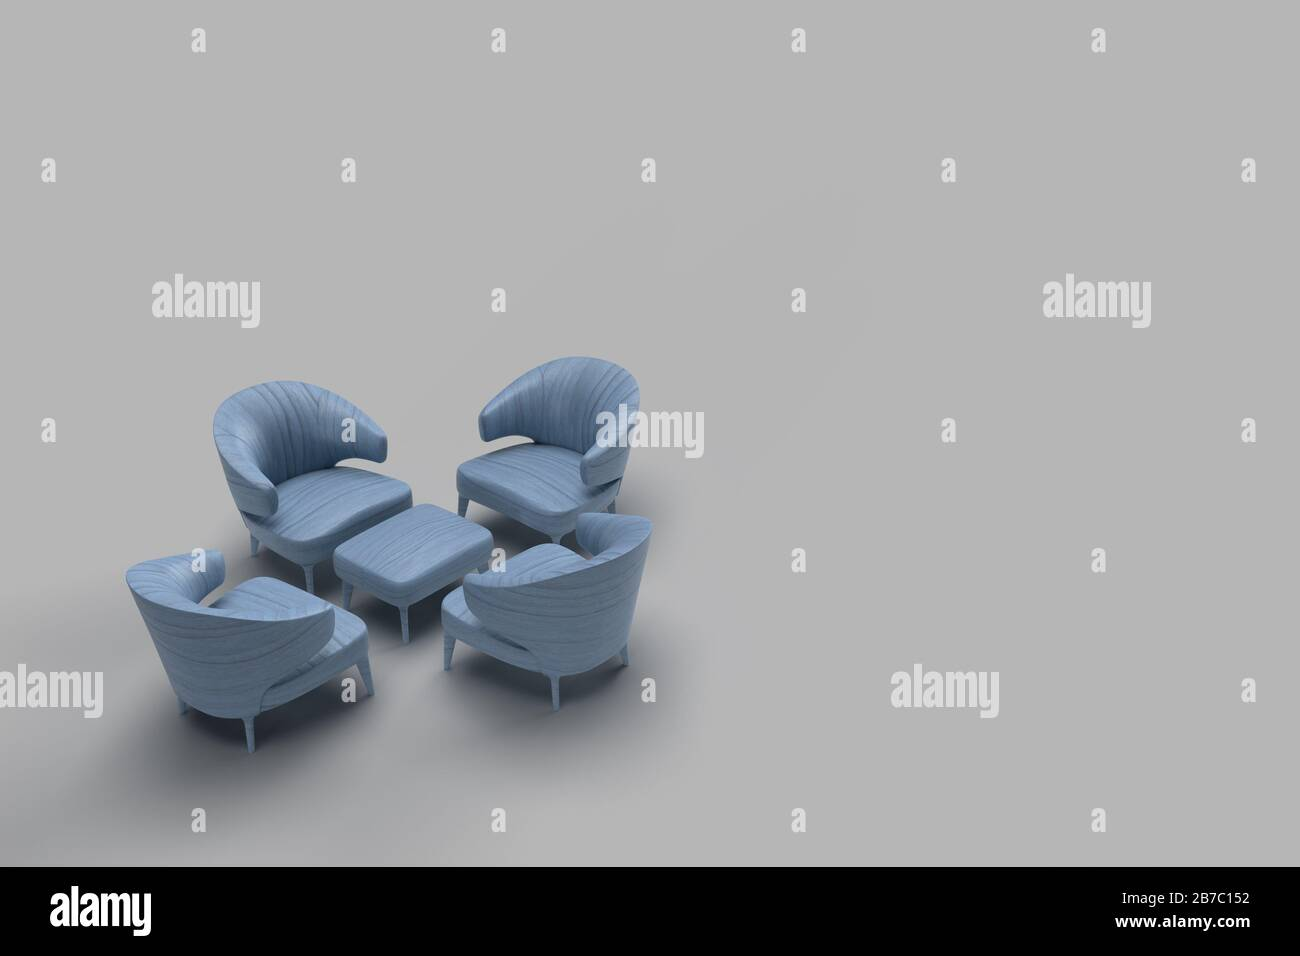 Picture of: 3d Render Of Blue Leather Coated Single Sofa Facing Each Other With Center Table In Grey Background Meeting Concept With Space For Text Stock Photo Alamy